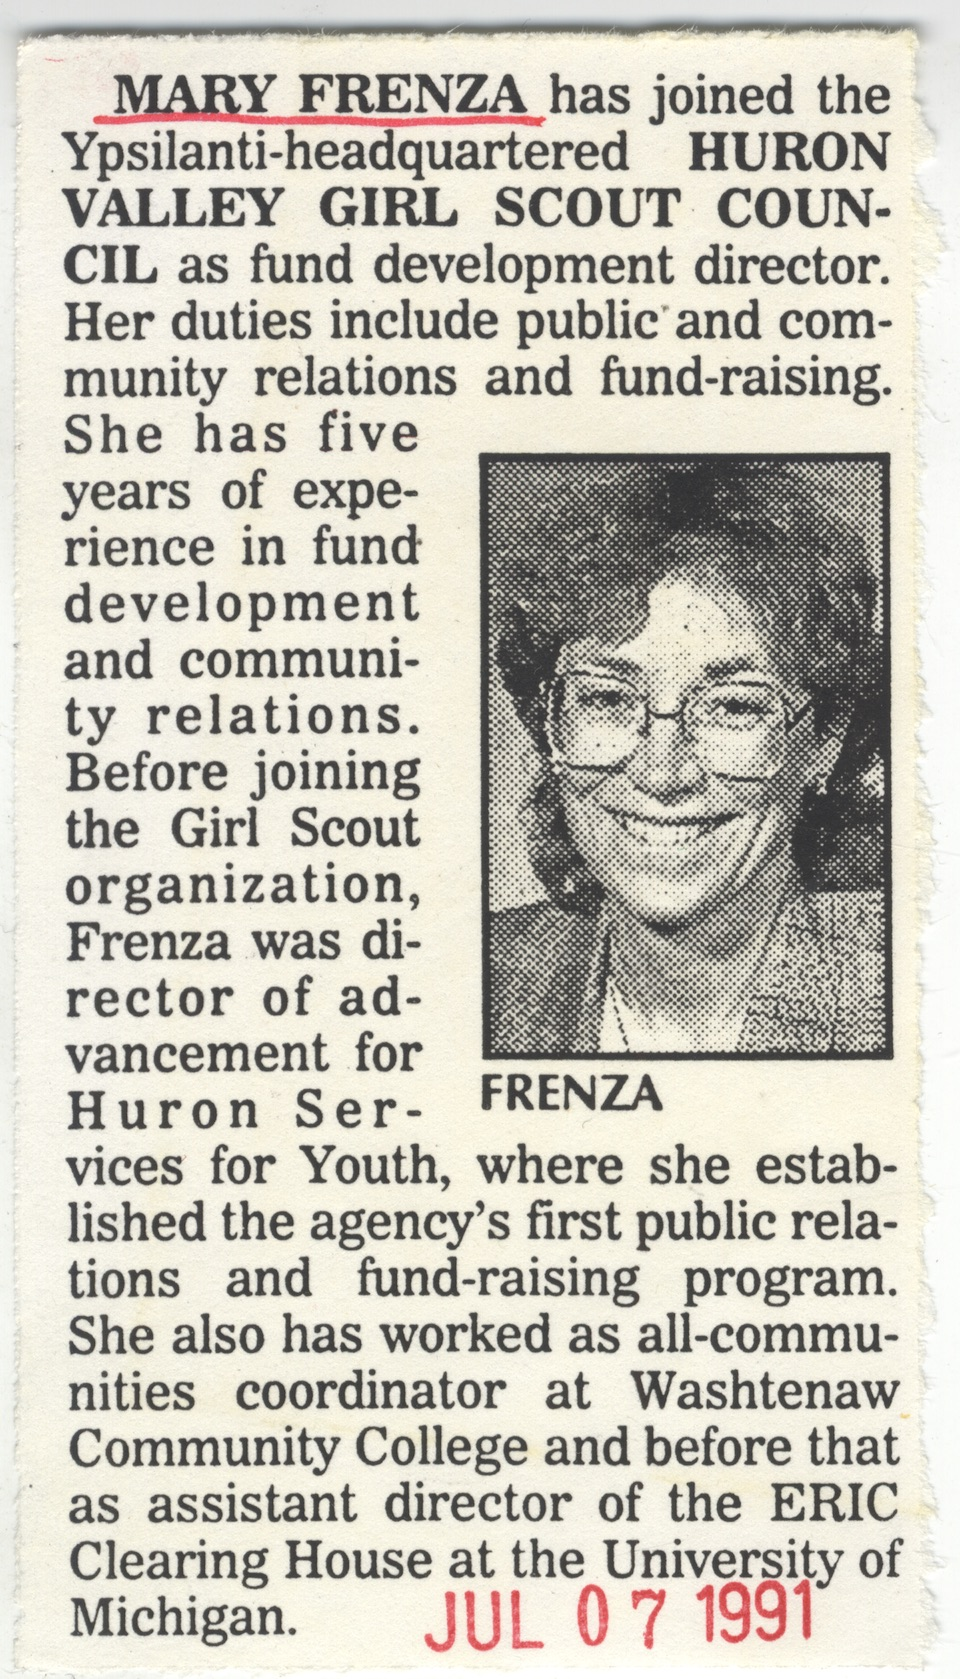 Mary Frenza has joined the Ypsilanti-headquartered Huron Valley Girl Scout Council image